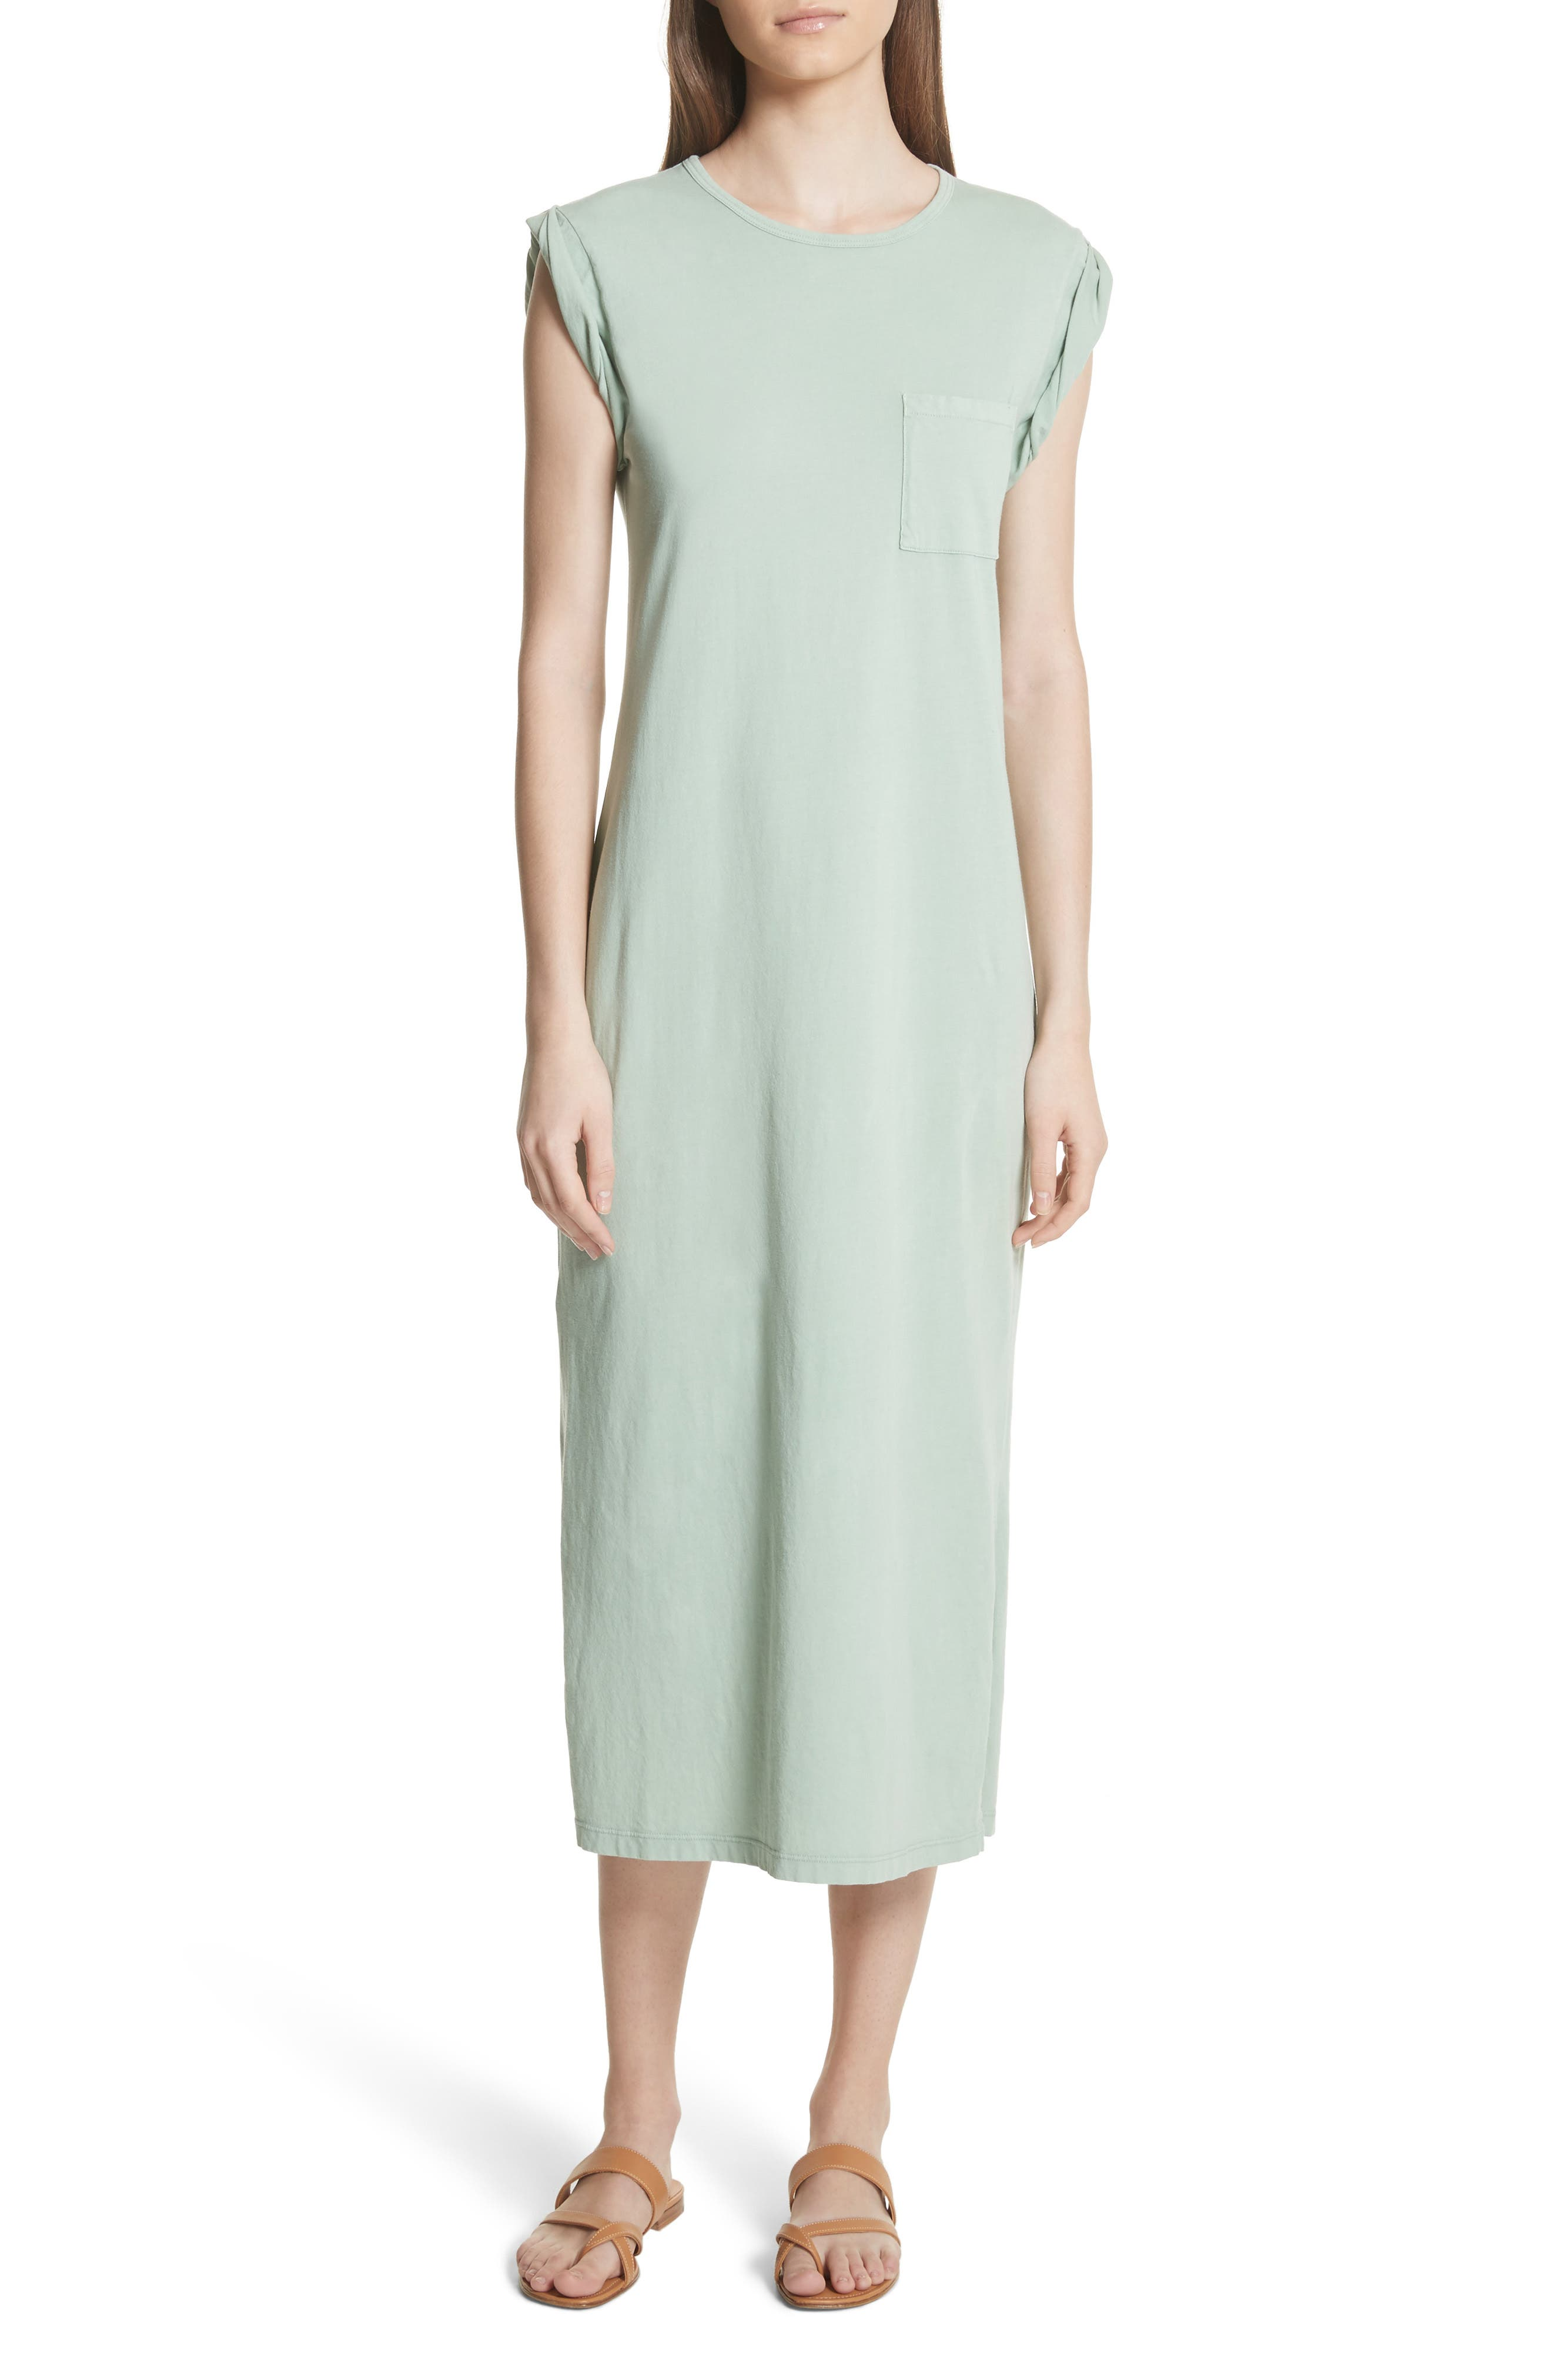 Muscle P Relaxed T-Shirt Dress,                         Main,                         color,